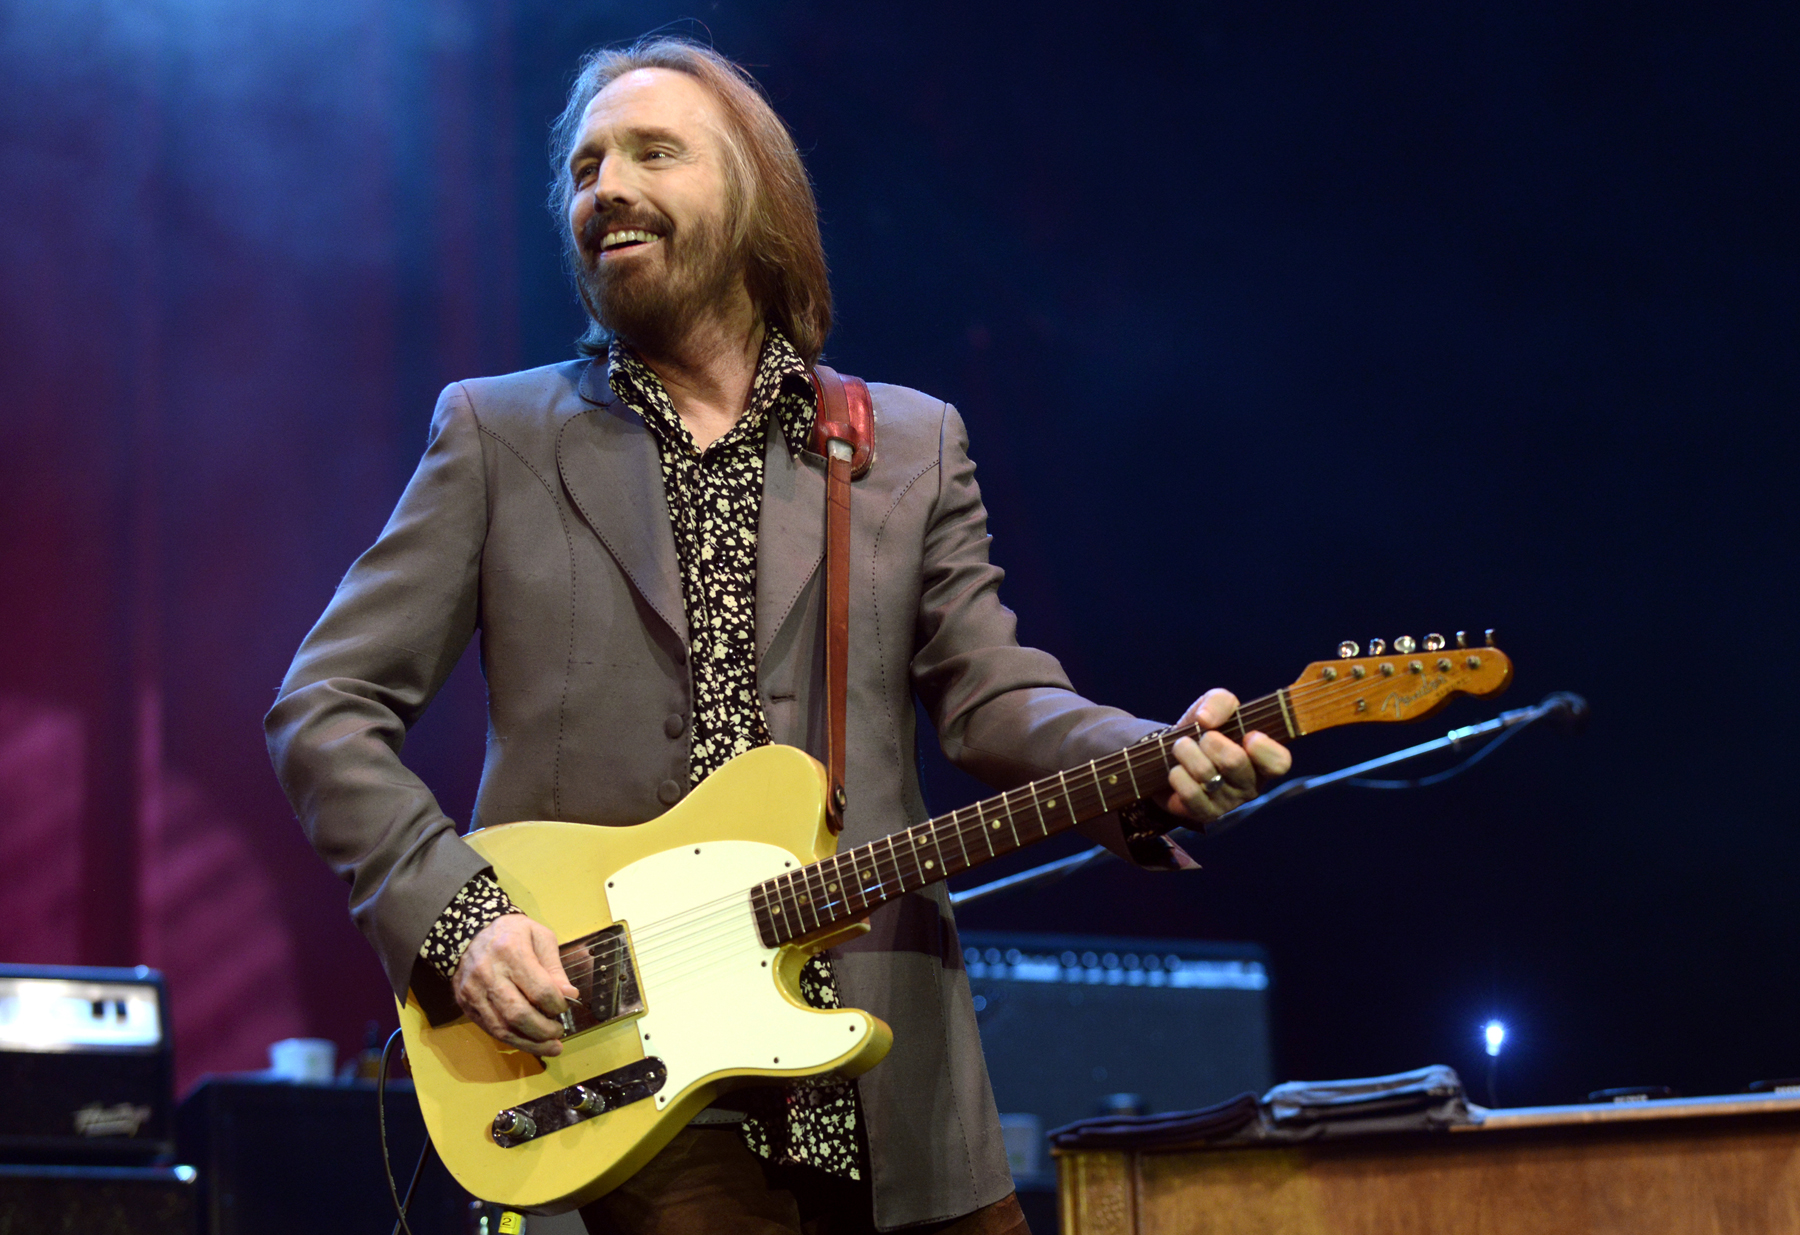 Hear Tom Petty's Blistering New Songs 'U Get Me High' and 'Red River'